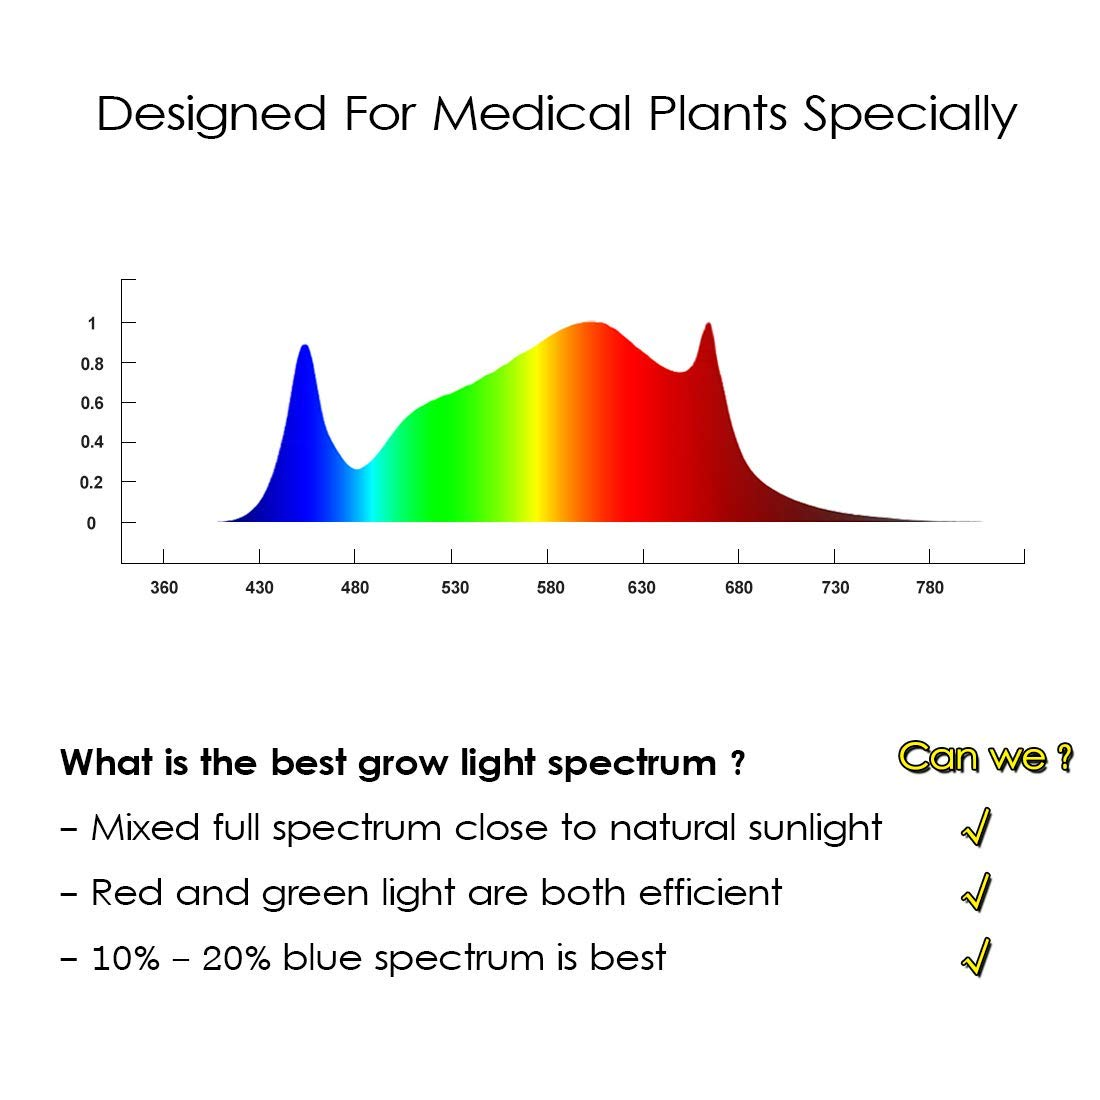 ONEO Led Grow Light 1000W Full Spectrum Sunlight 3500K White and 660nm Red Added Grow Lights for Indoor Plants, Better for Full Growth Flowering Fruiting Veg Seedling with Thermometer Hygrometer by ONEO (Image #4)